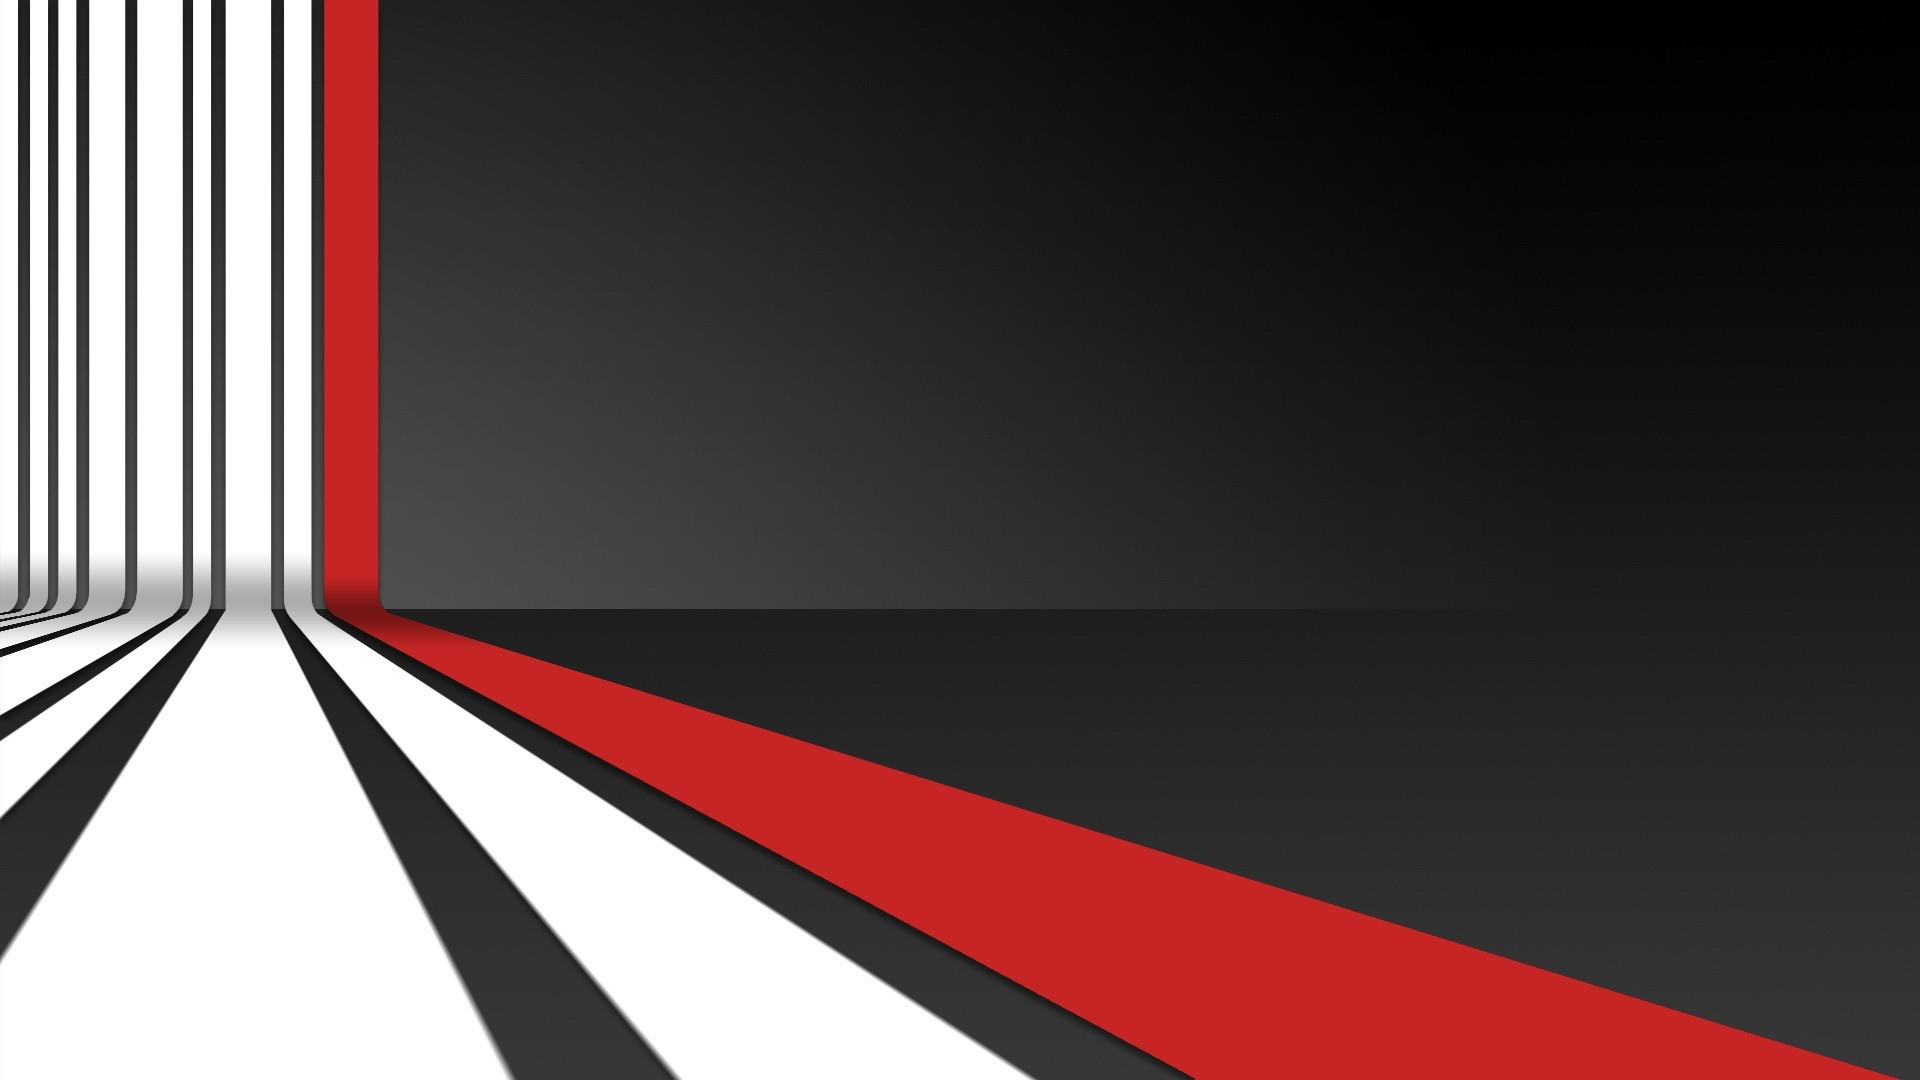 Black and Red Wallpaper 1920x1080 (75+ images)